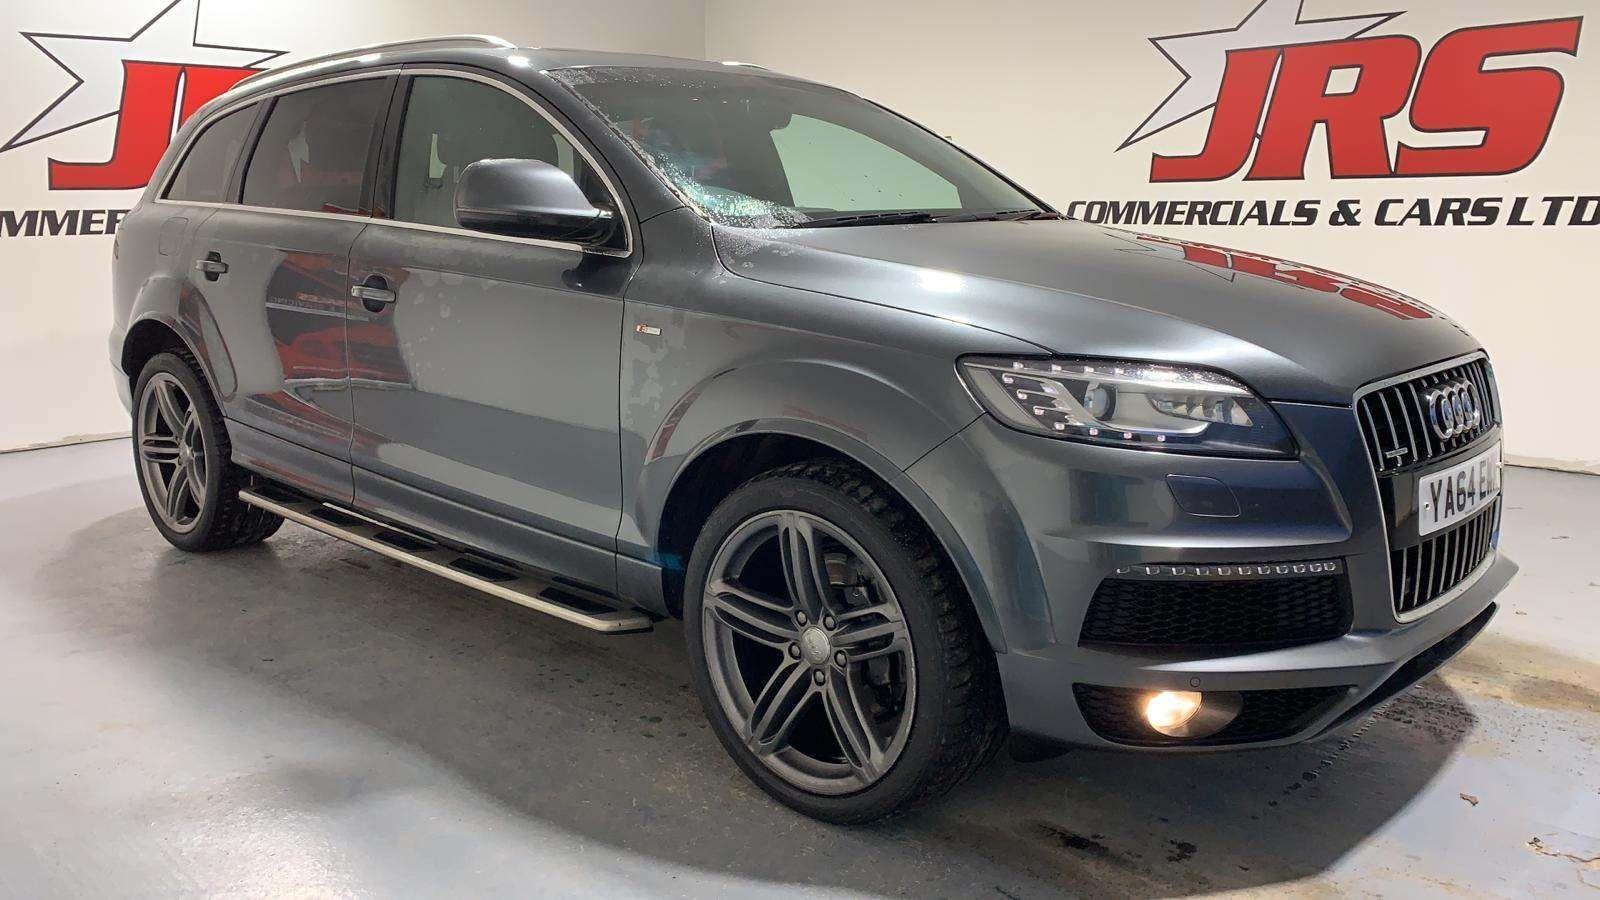 2015 AUDI Q7 3.0 TDI S line Plus Tiptronic quattro Diesel Automatic **Full Leather** – J R S Commercials And Cars Dungannon